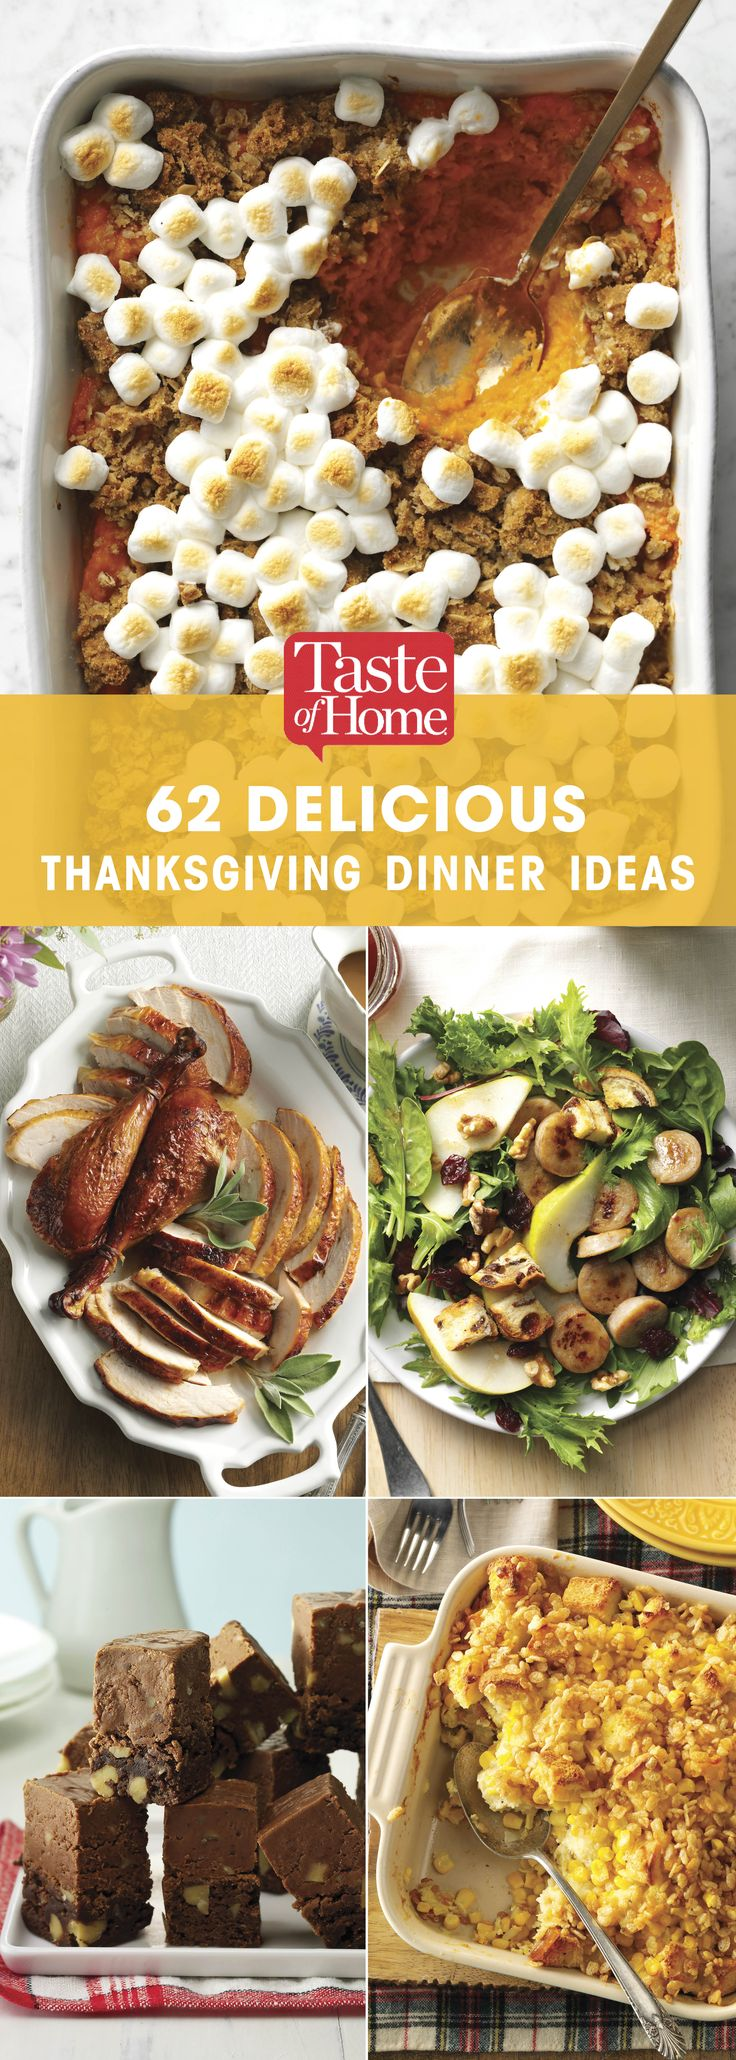 62 Delicious Thanksgiving Dinner Ideas (from Taste of Home)